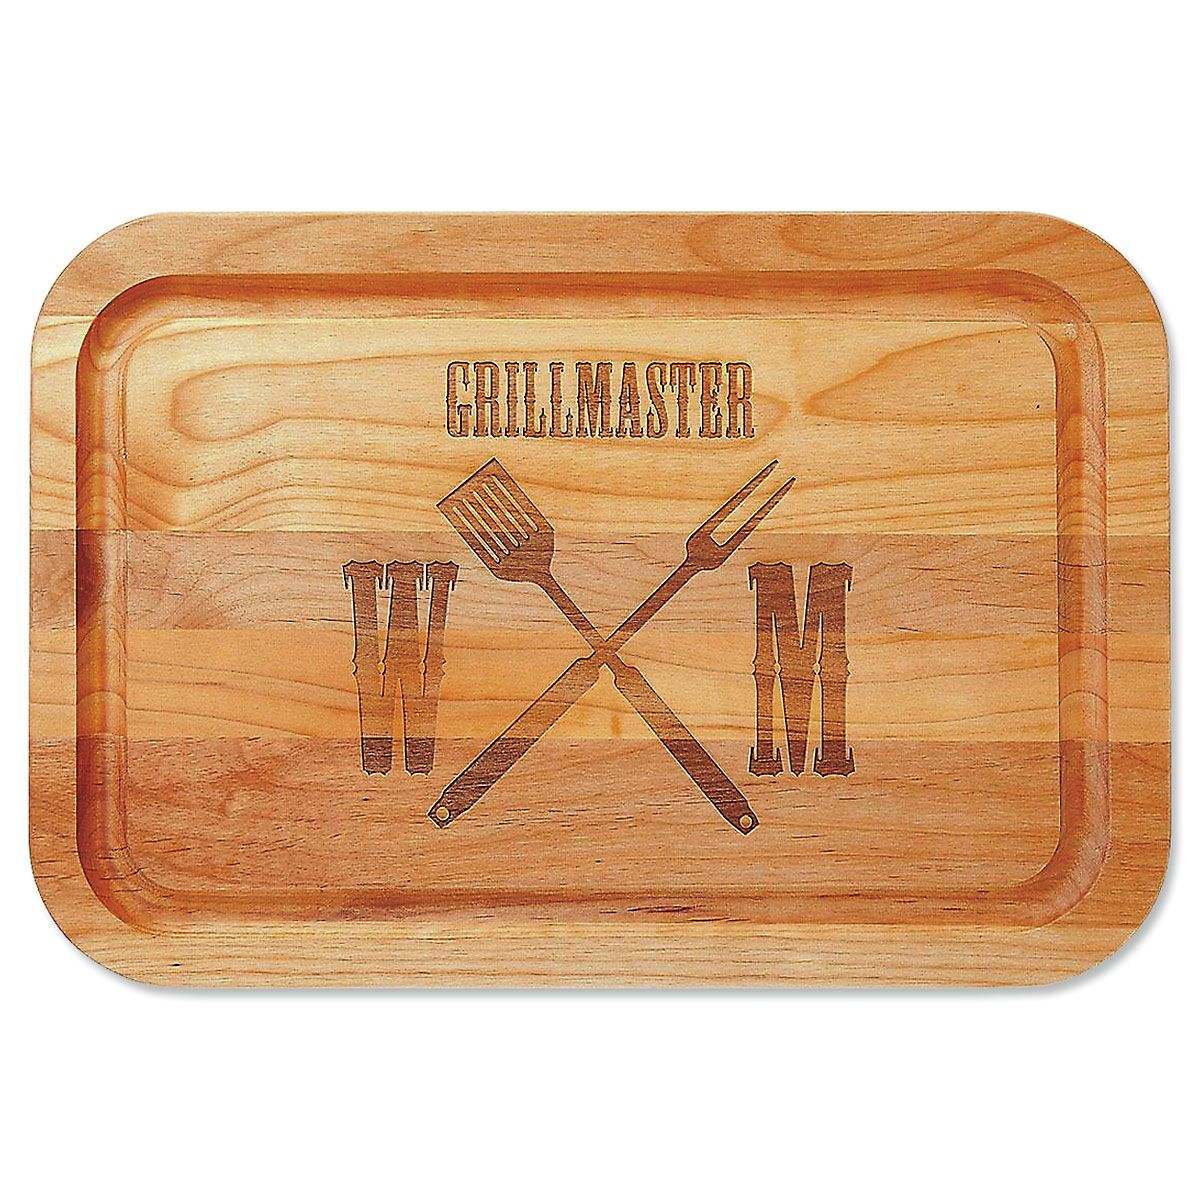 Grillmaster Alder Personalized Wood Cutting Board